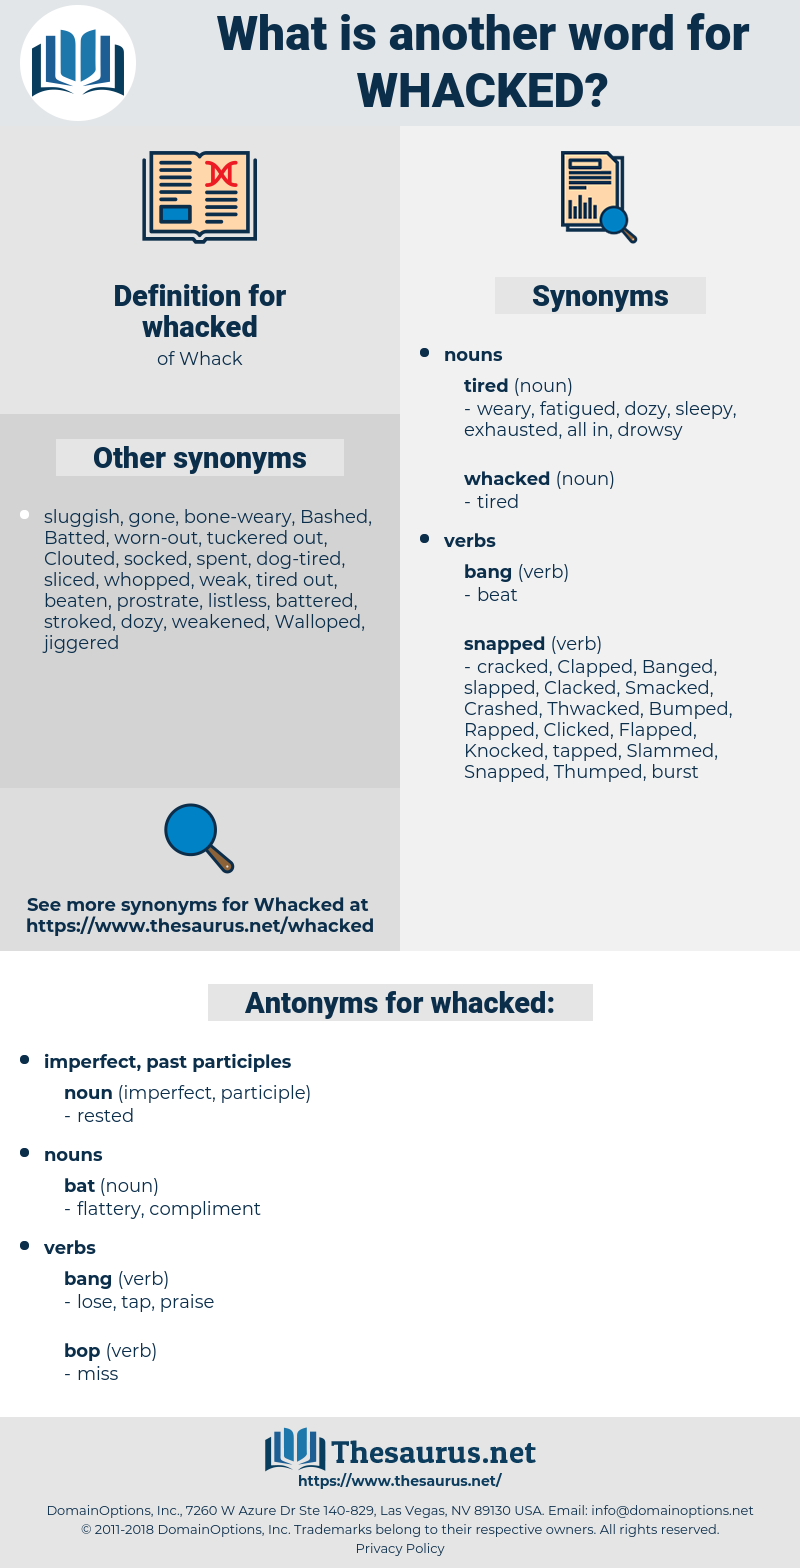 whacked, synonym whacked, another word for whacked, words like whacked, thesaurus whacked